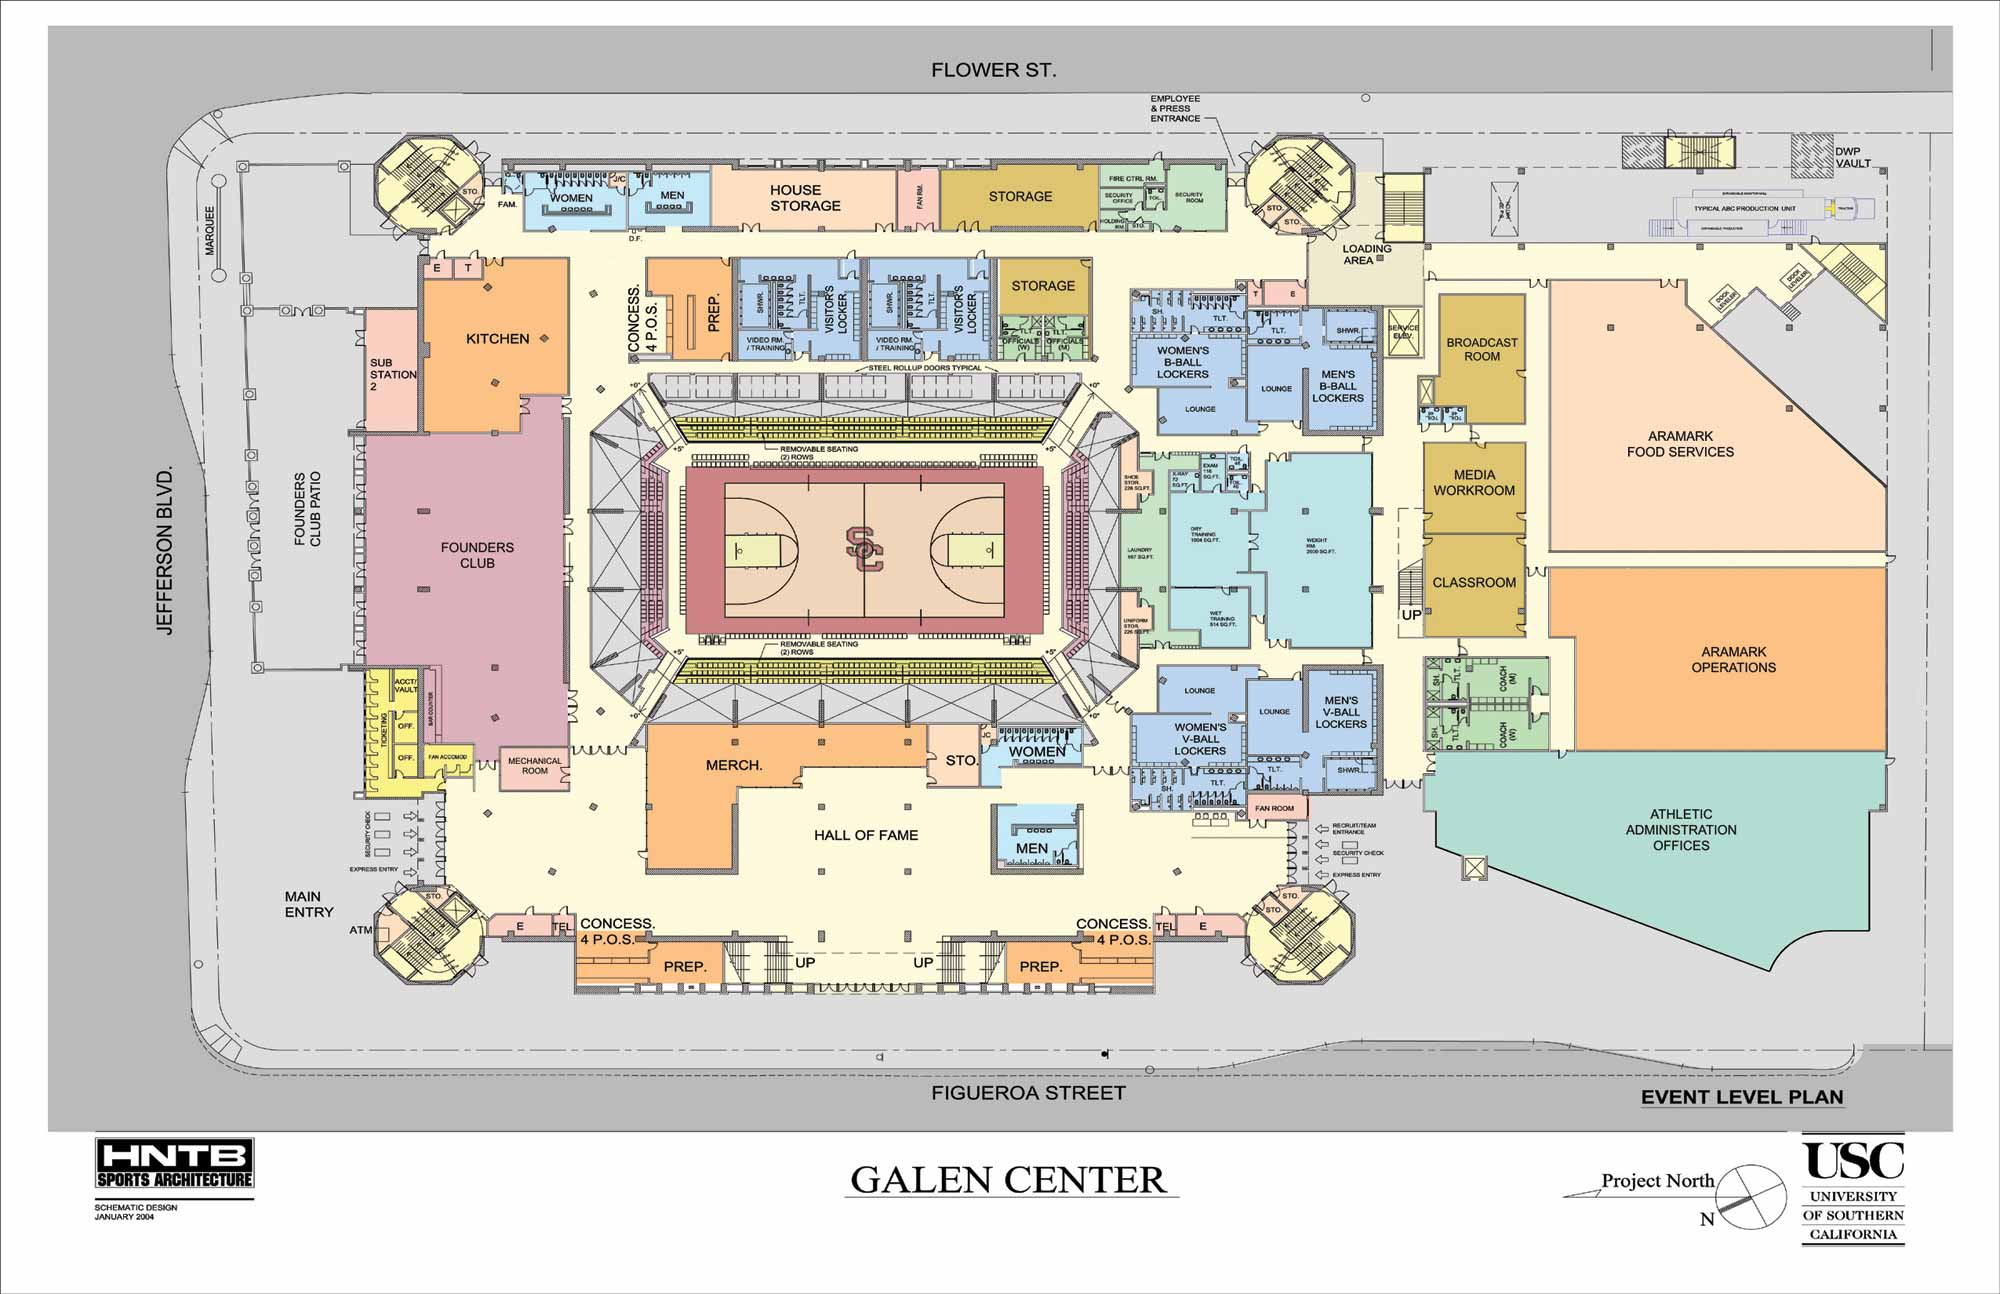 Arena Map | Galen Center on mccarthy athletic center map, galen center los angeles, galen center parking map, galen center seating chart basketball, galen center directions,